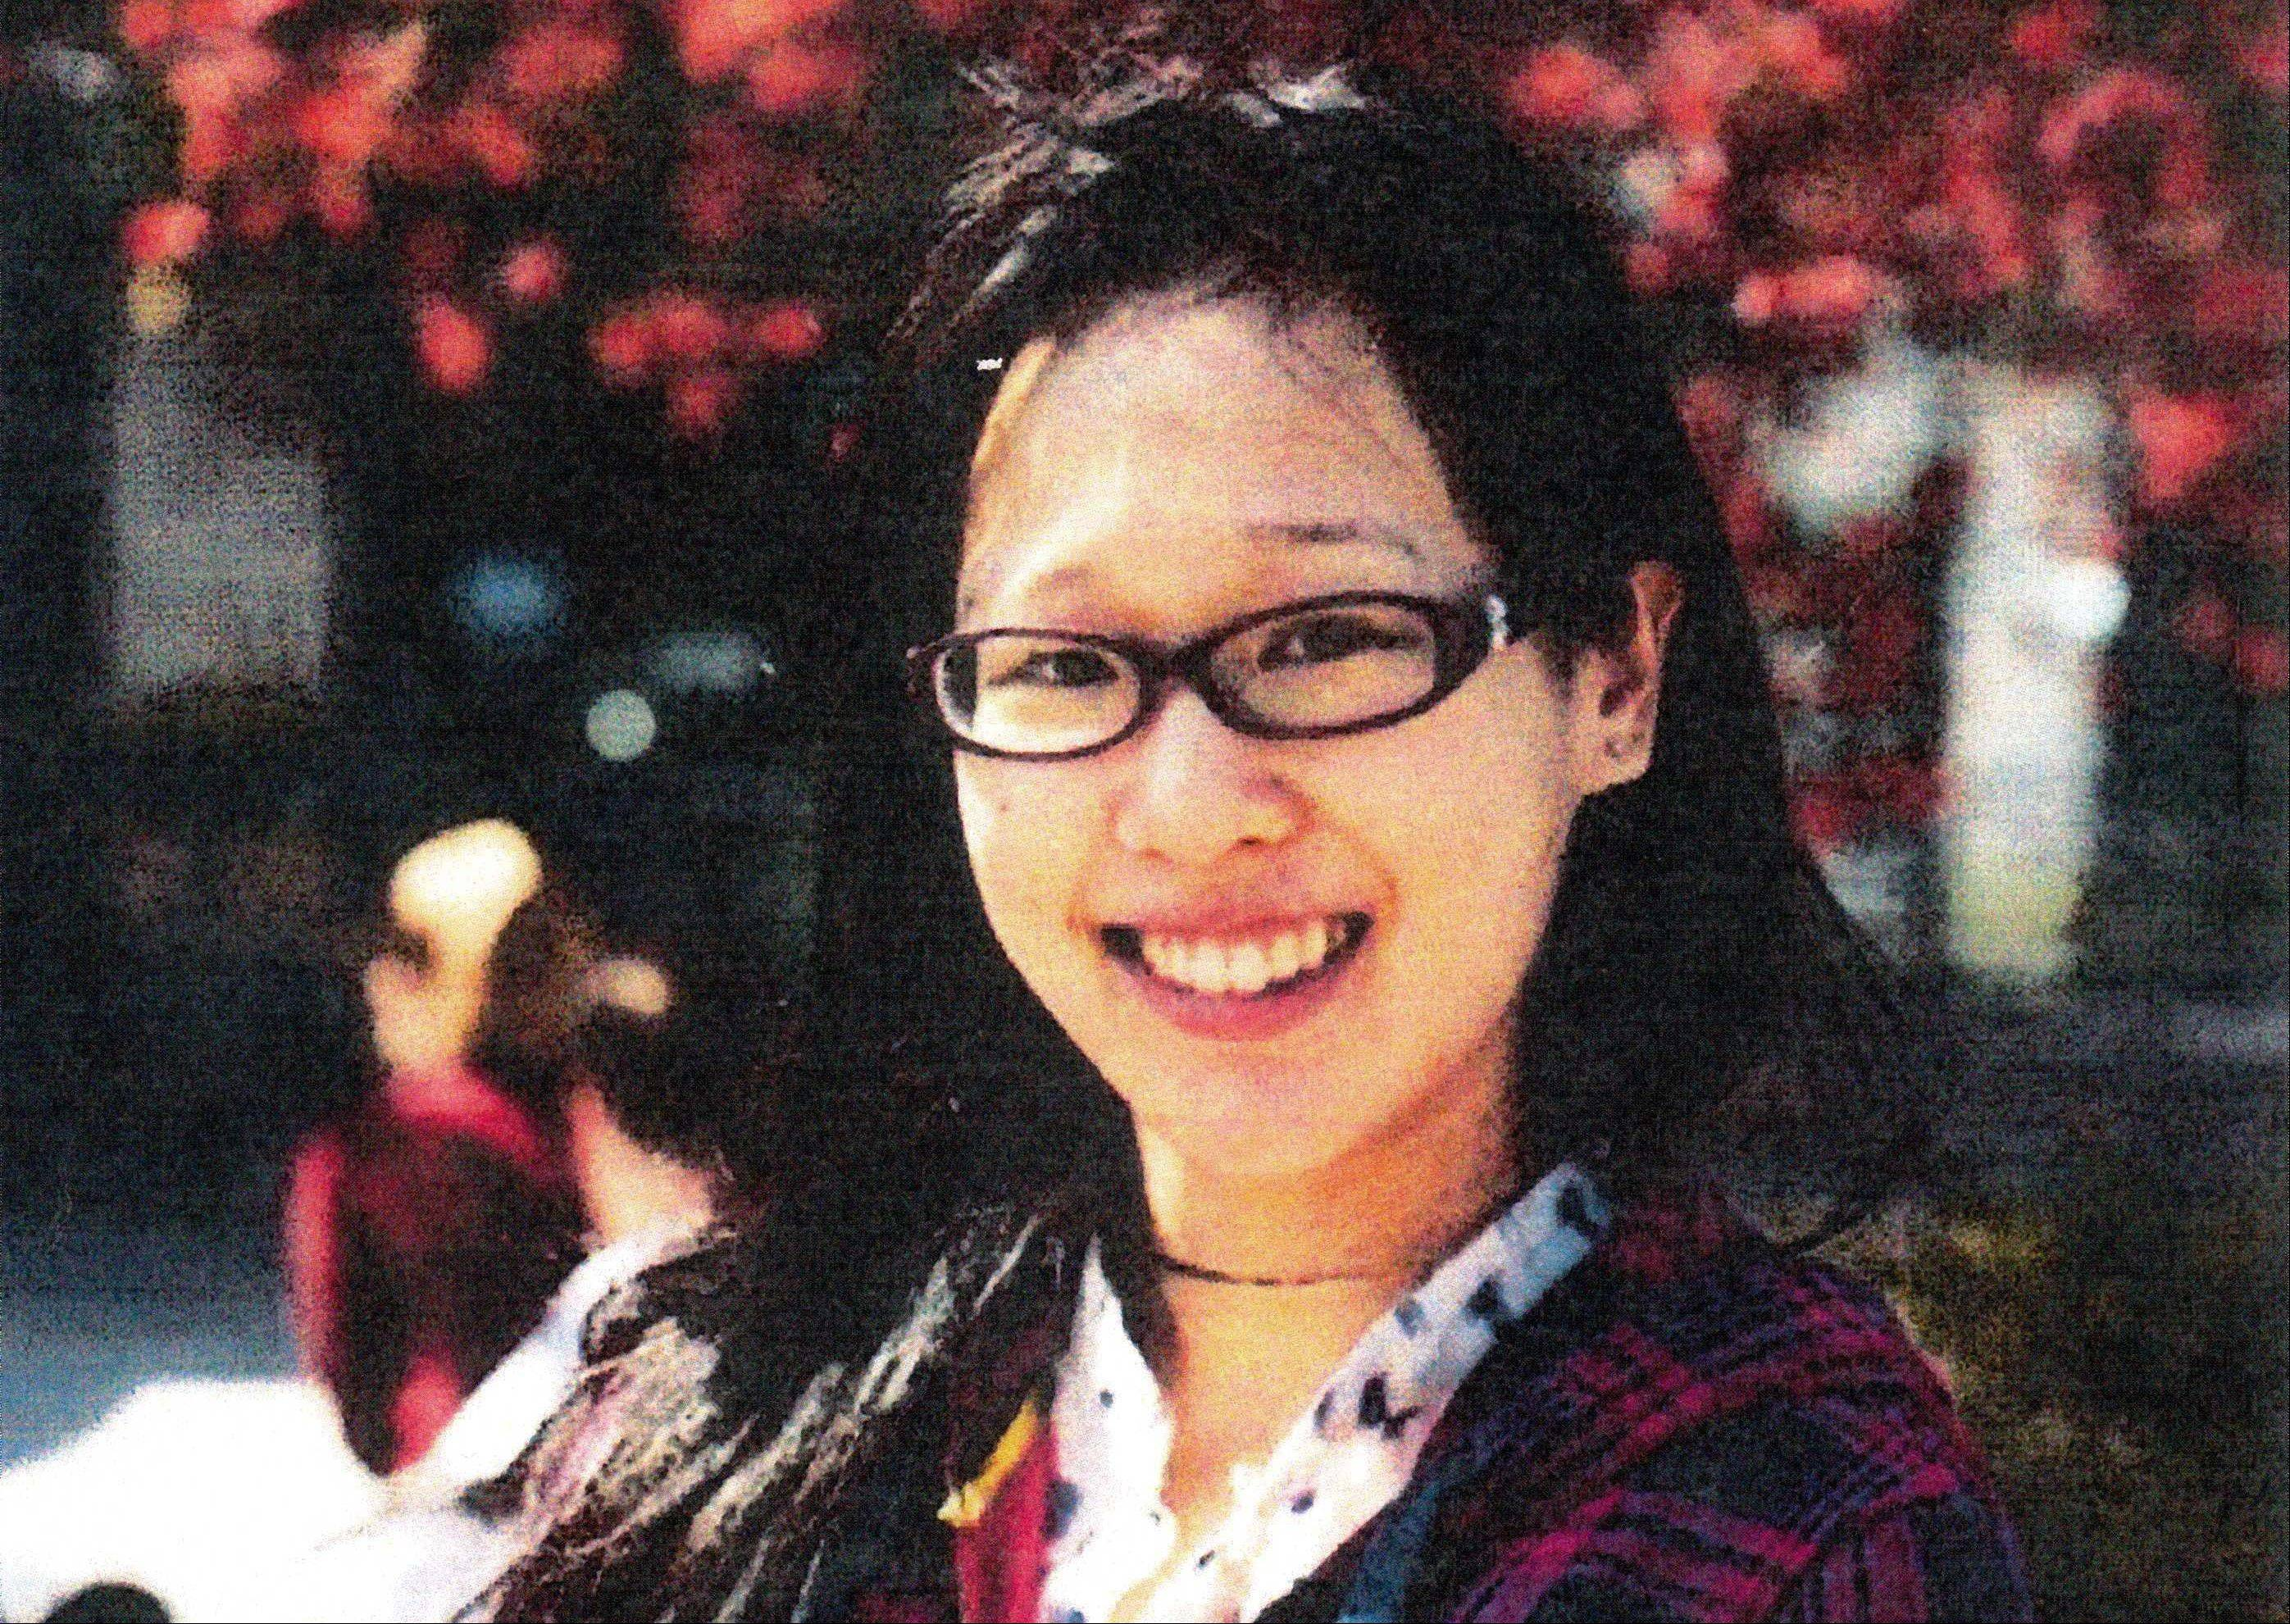 Canadian tourist Elisa Lam had been missing for about two weeks when officials at the historic Cecil Hotel in downtown Los Angeles found her body in a water cistern on the hotel roof.